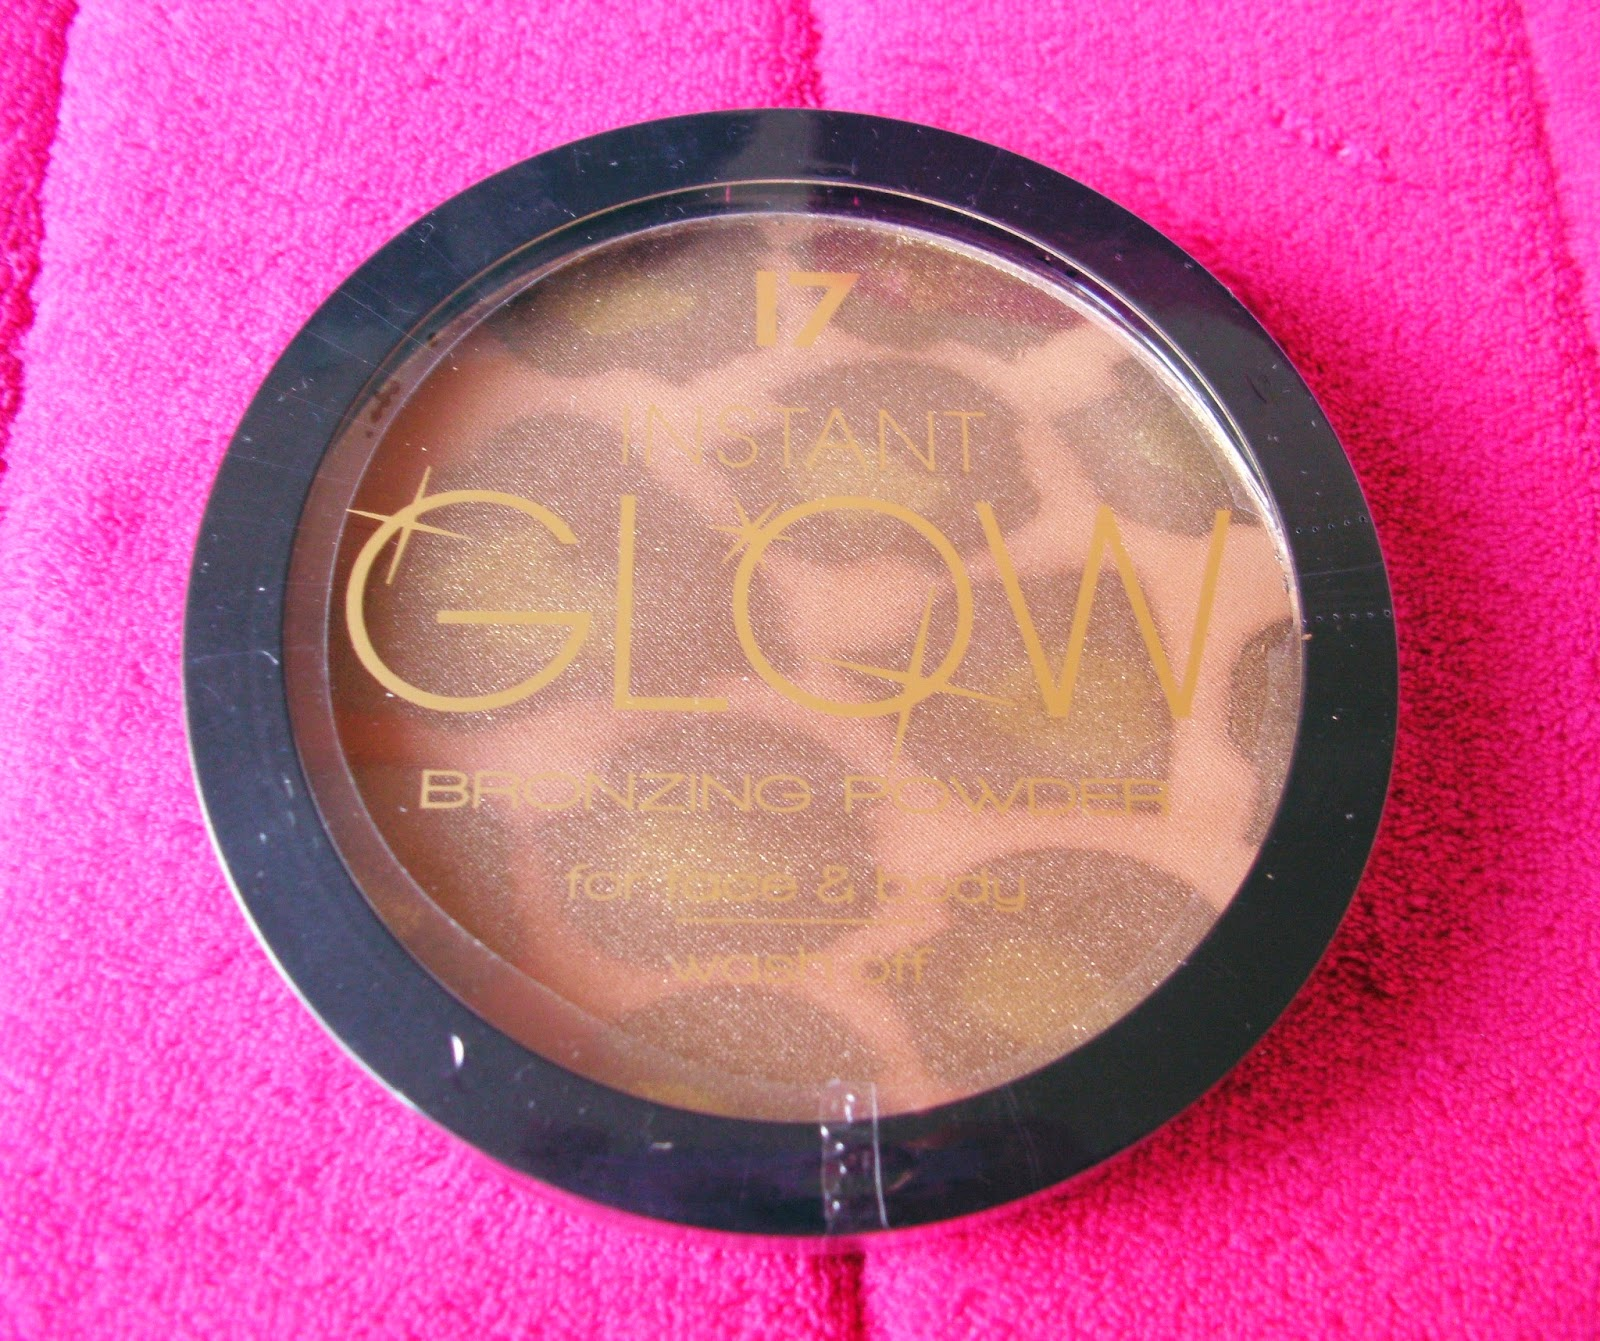 Boots 17 Instant Glow Bronzing Powder for face and body